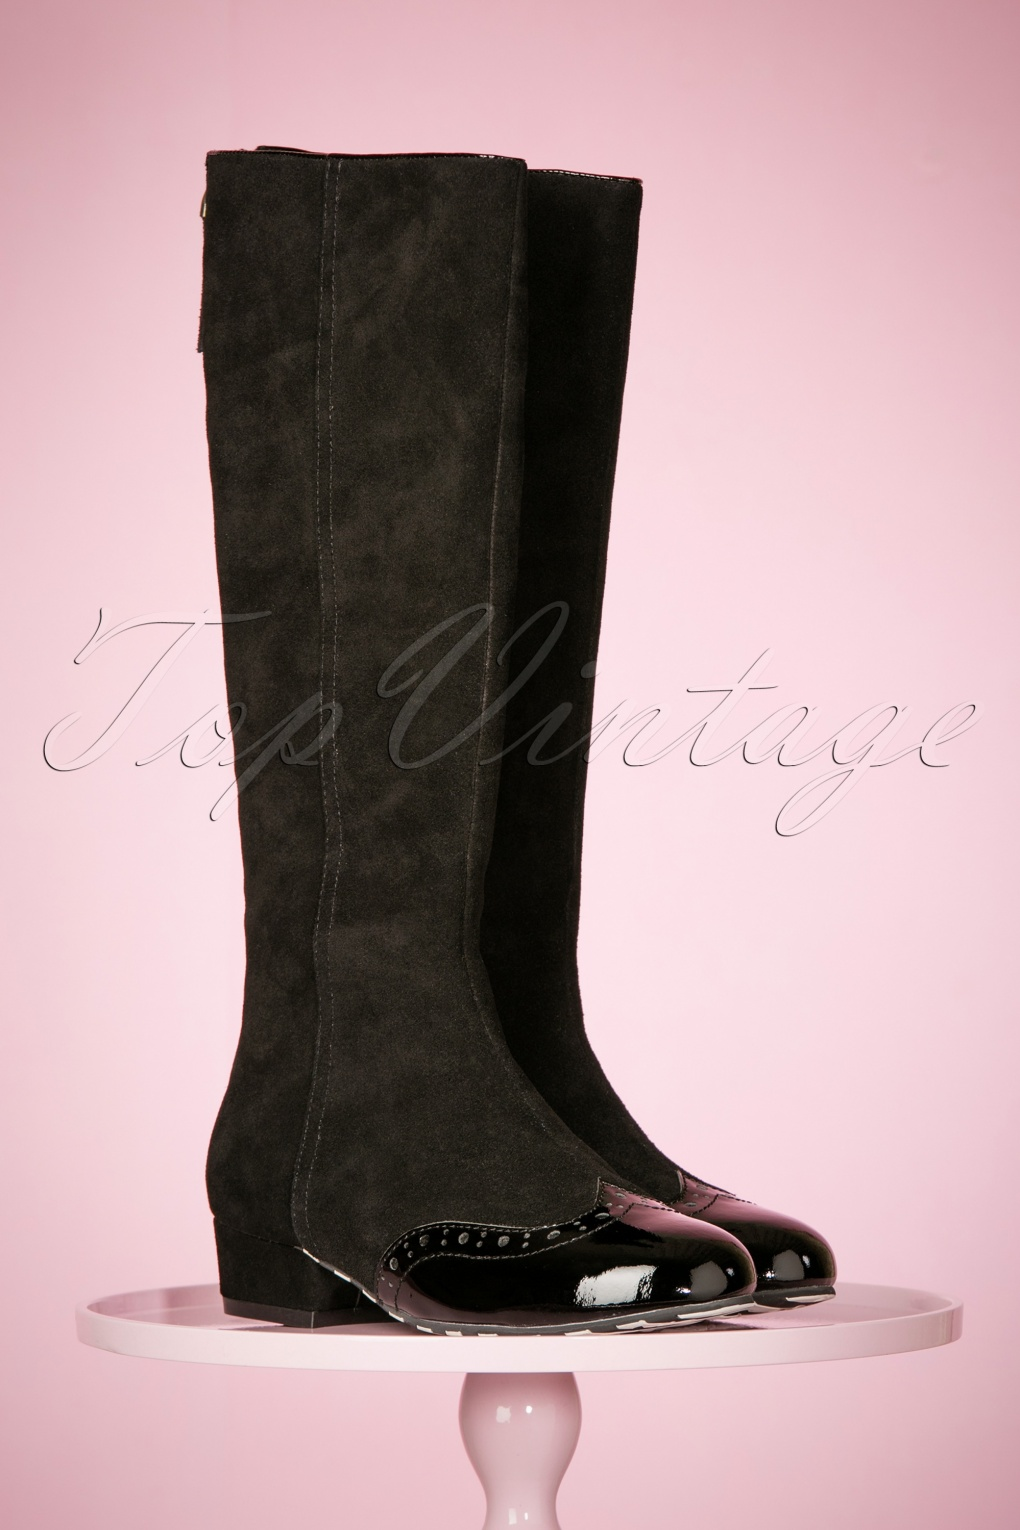 Retro Boots, Granny Boots, 70s Boots 60s Alice Dreaming Suede Boots in Black £218.86 AT vintagedancer.com